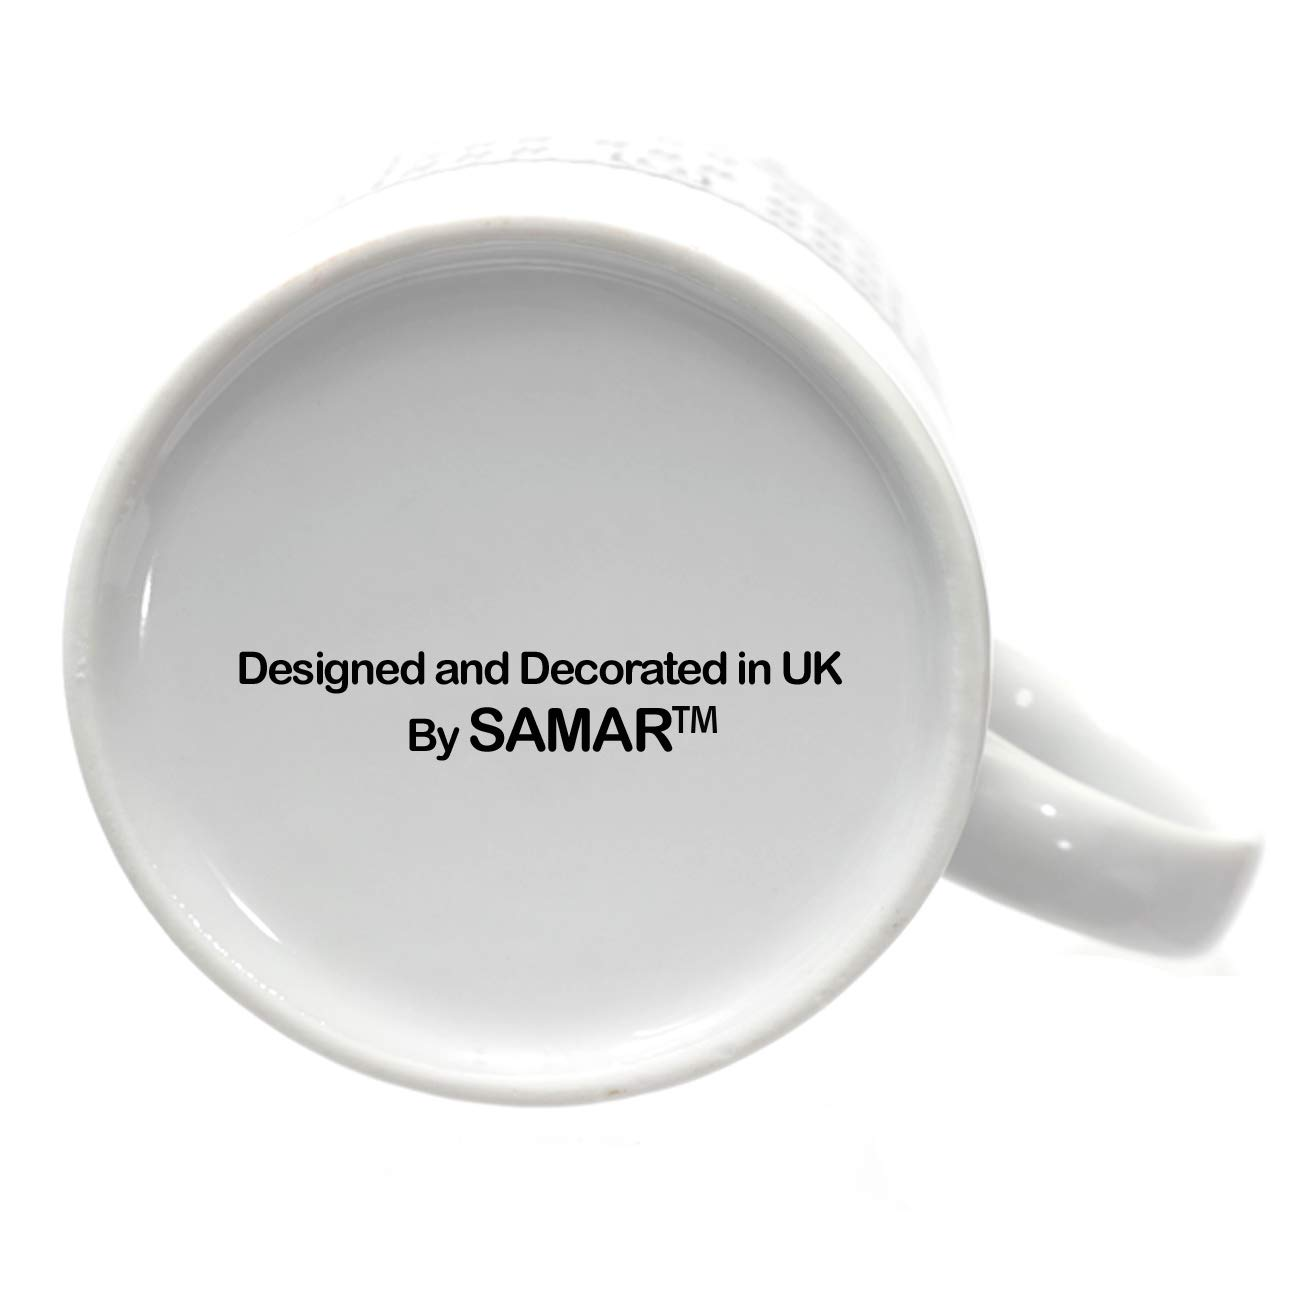 Personalised Mug - Add Your Text, Picture, Design or Logo on This Ceramic Coffee Mug 11oz. Customised Gift idea for Birthday, Wedding, Anniversary and for Other Special Moments